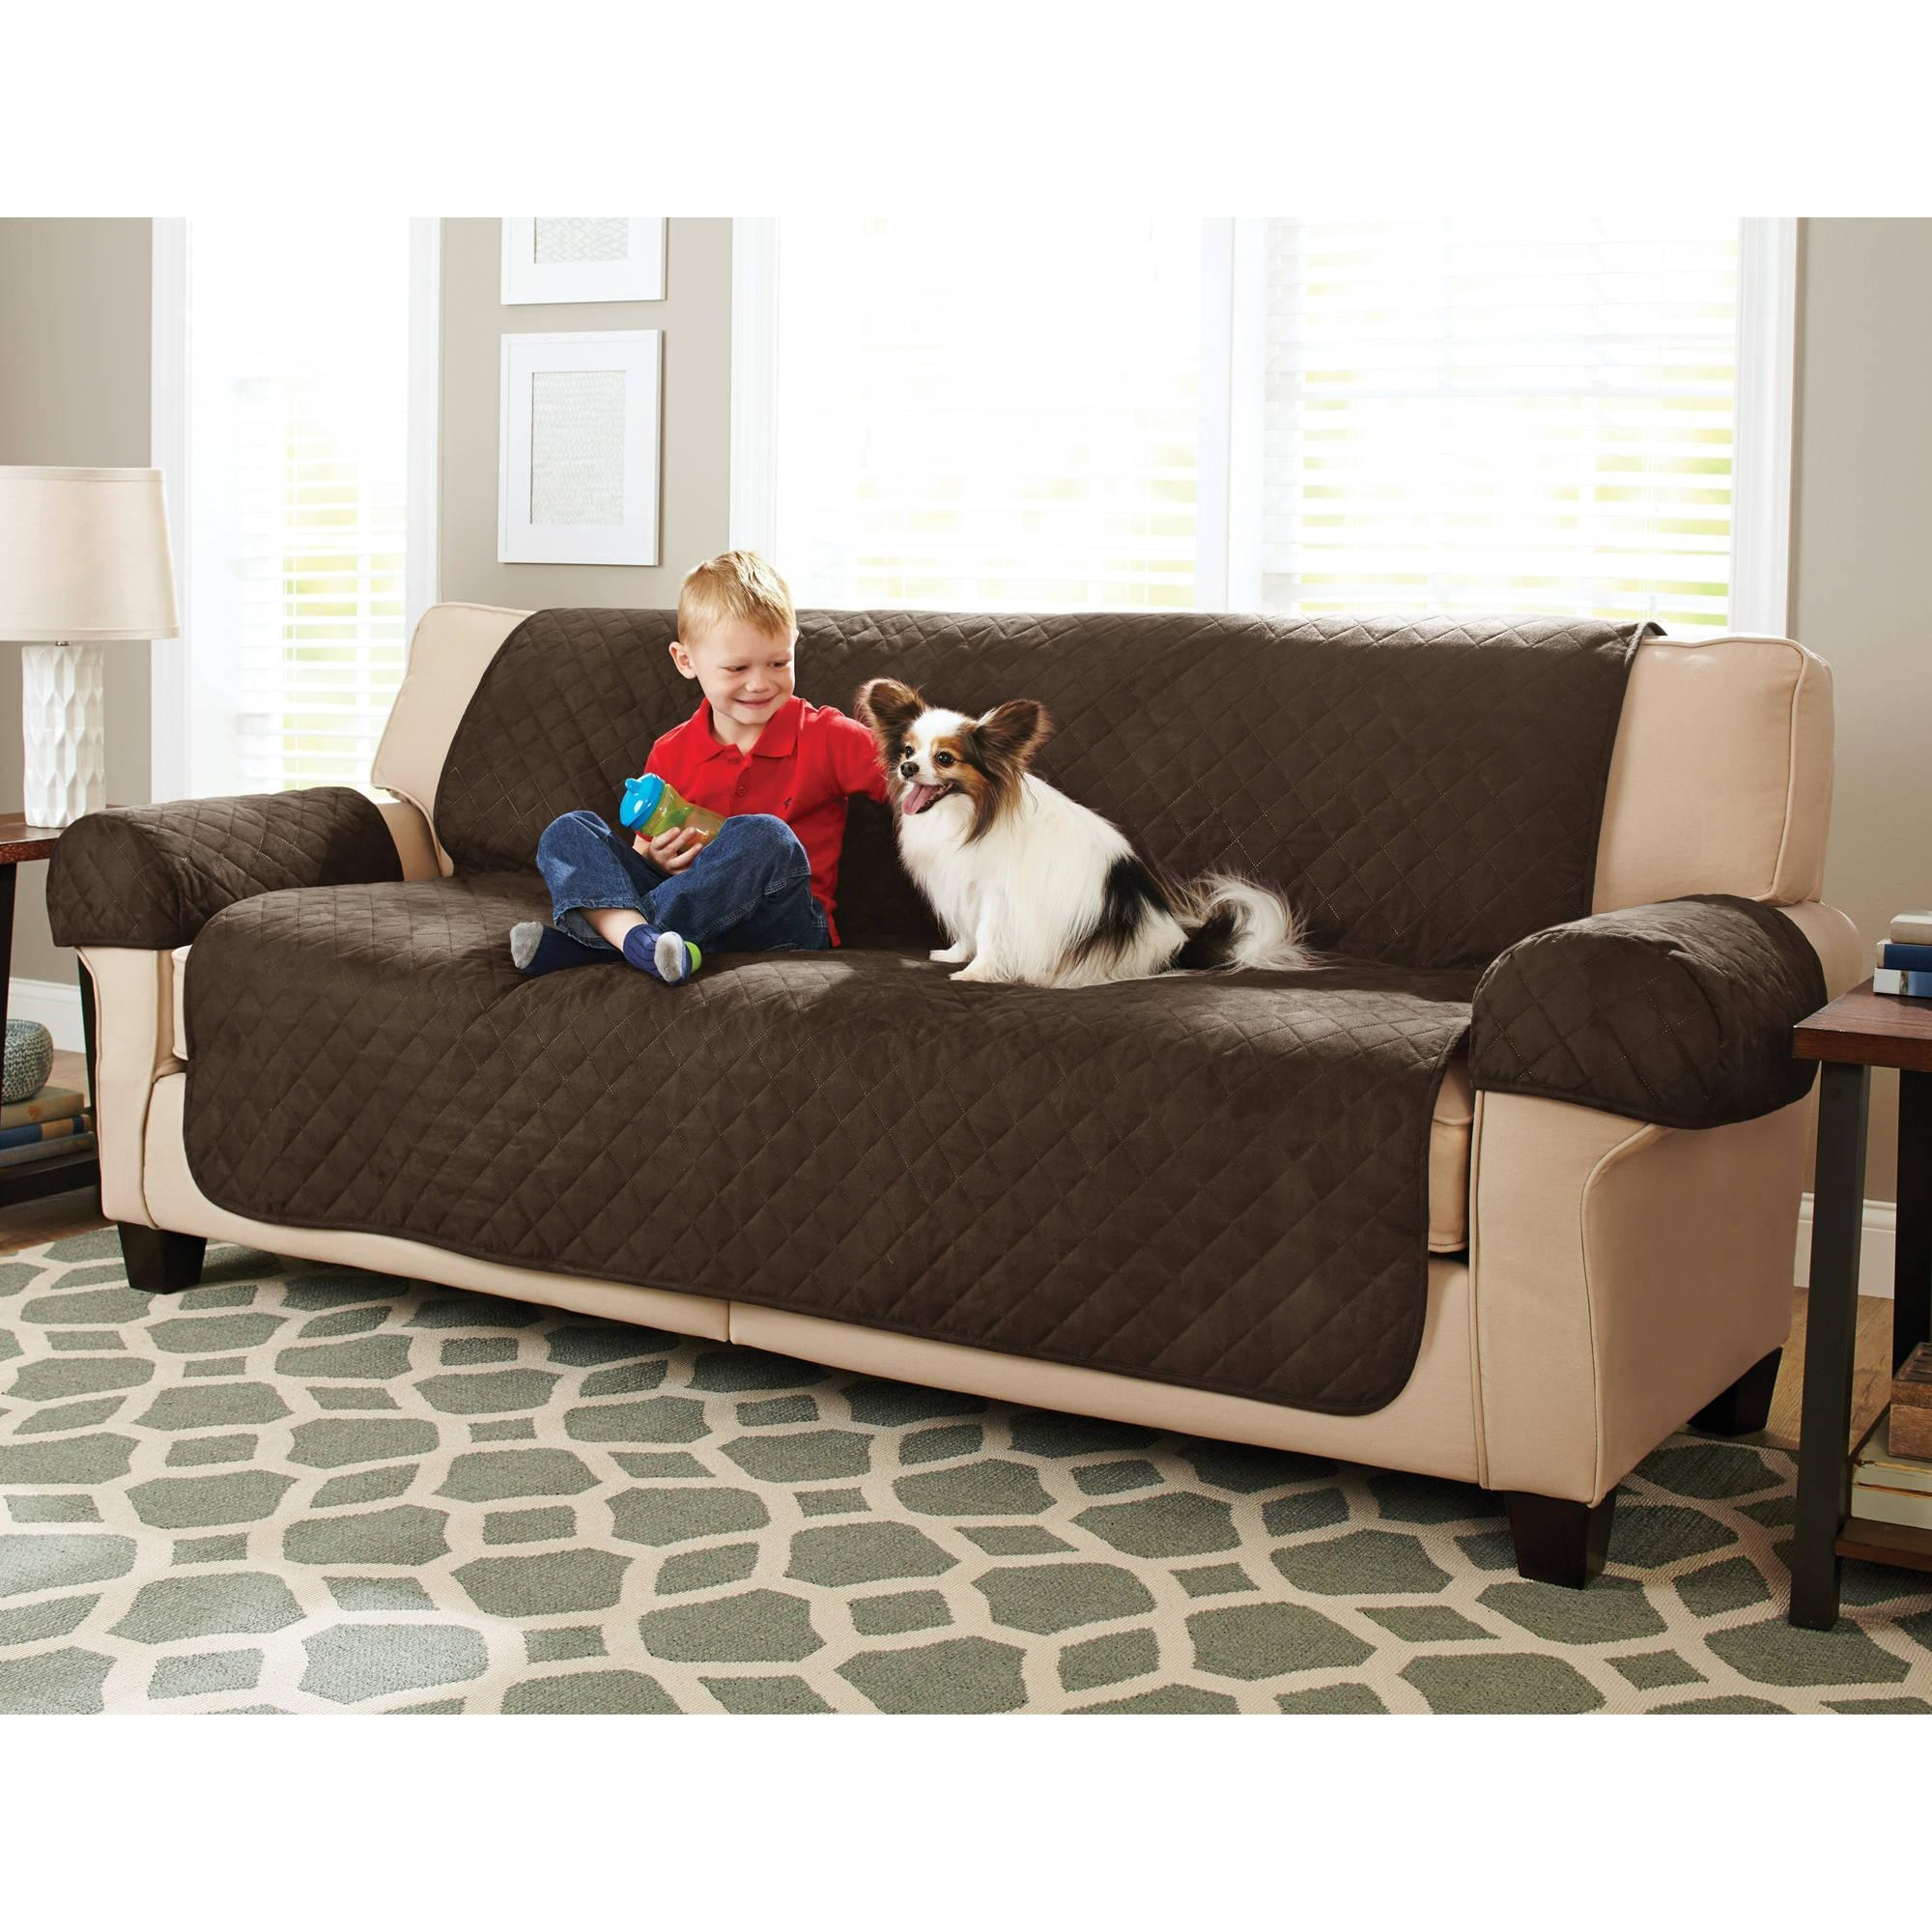 cat tunnel sofa price outdoor cover singapore 20 best collection of couches ideas